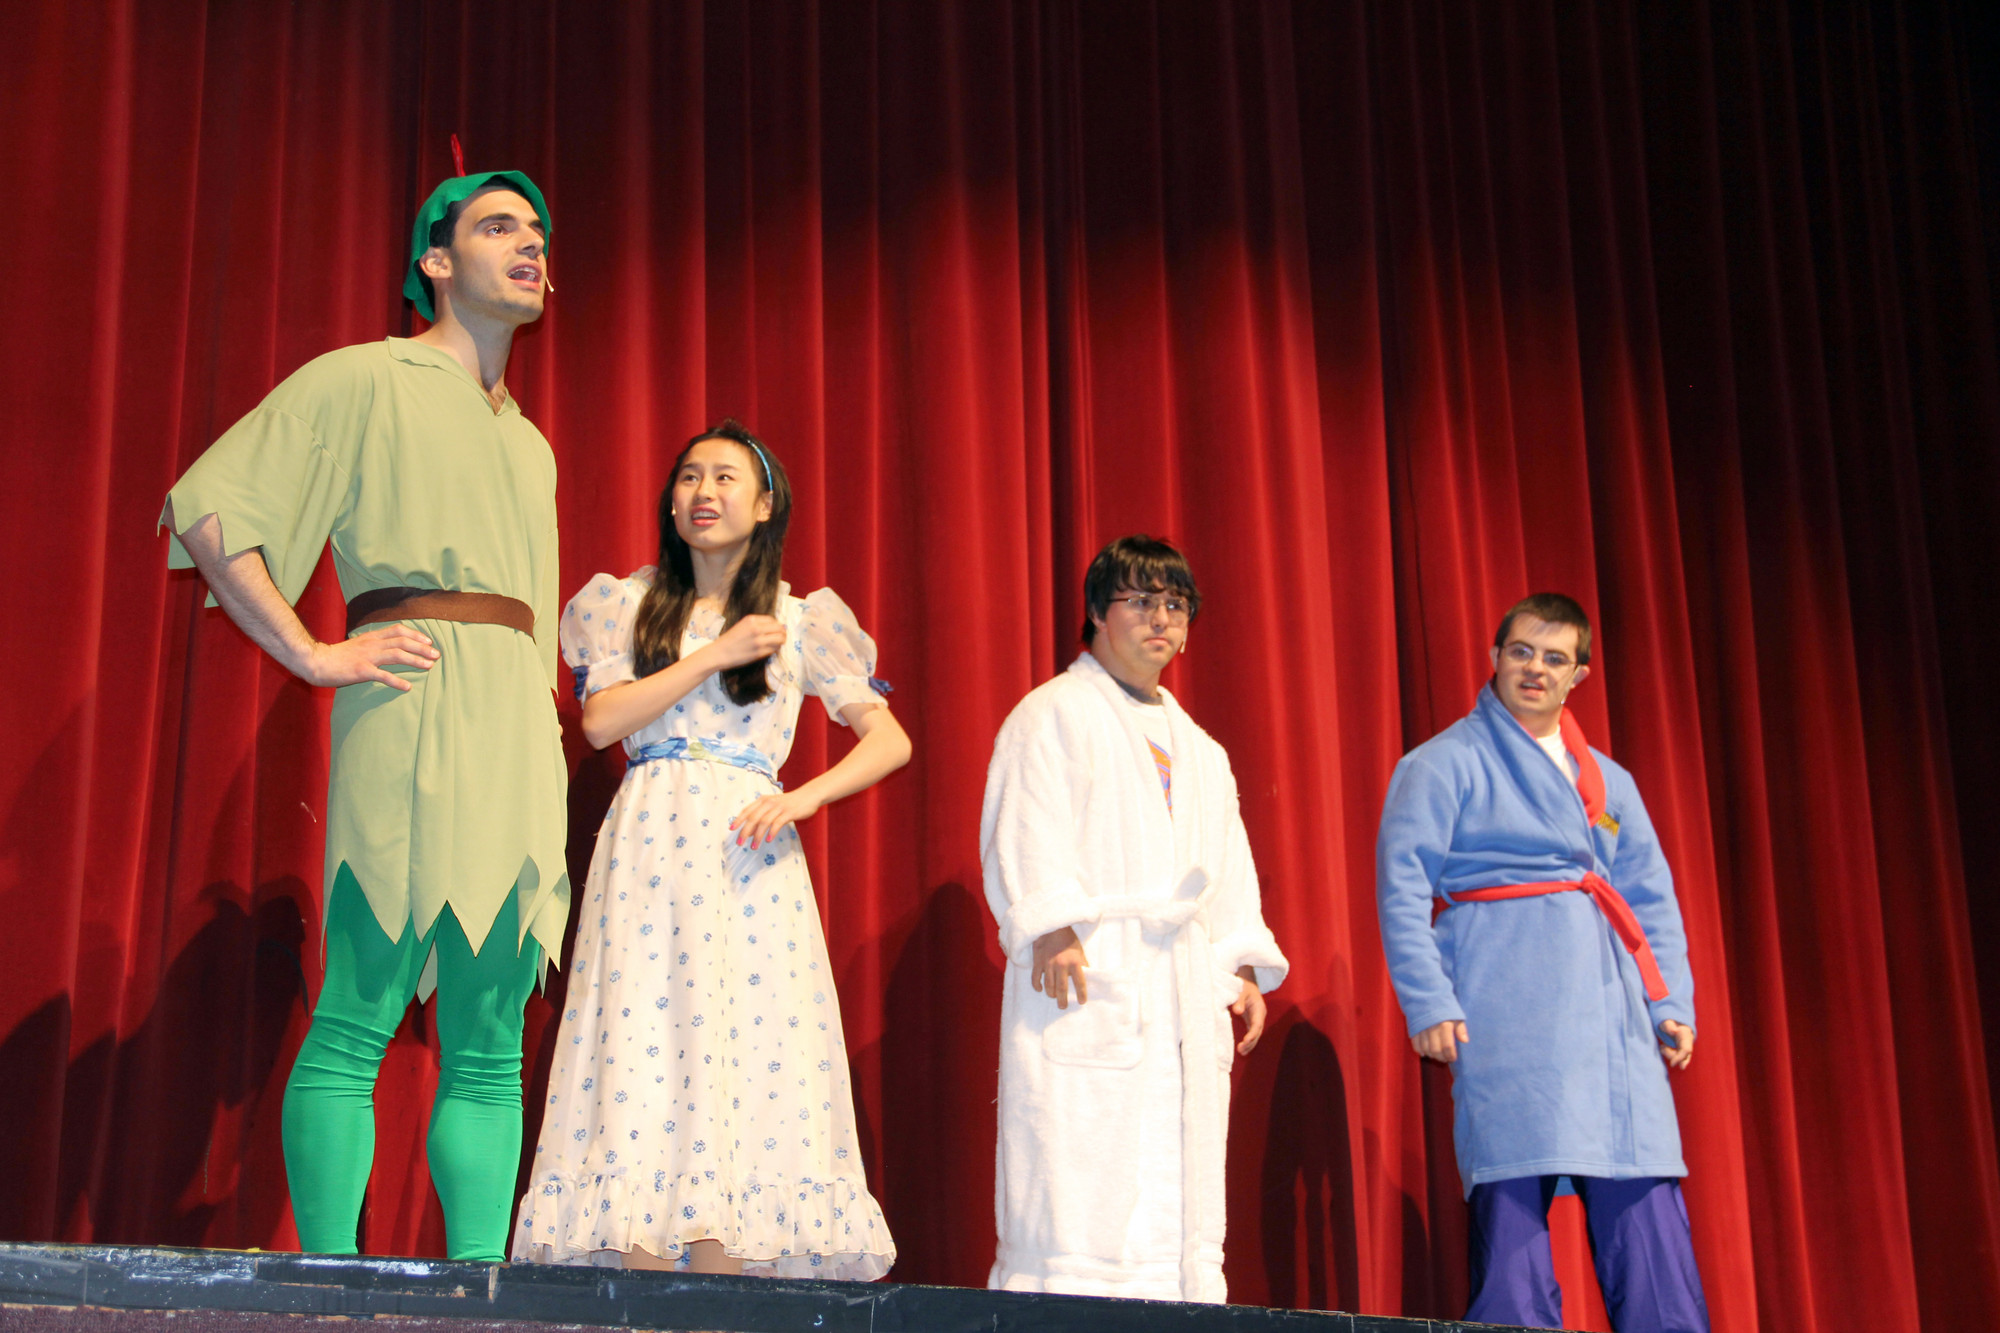 Peter Pan, John Manna with Wendy, Quitt Lysatt, and her brothers John, Thomas Esposito, and Michael, Stephen Jarosz.